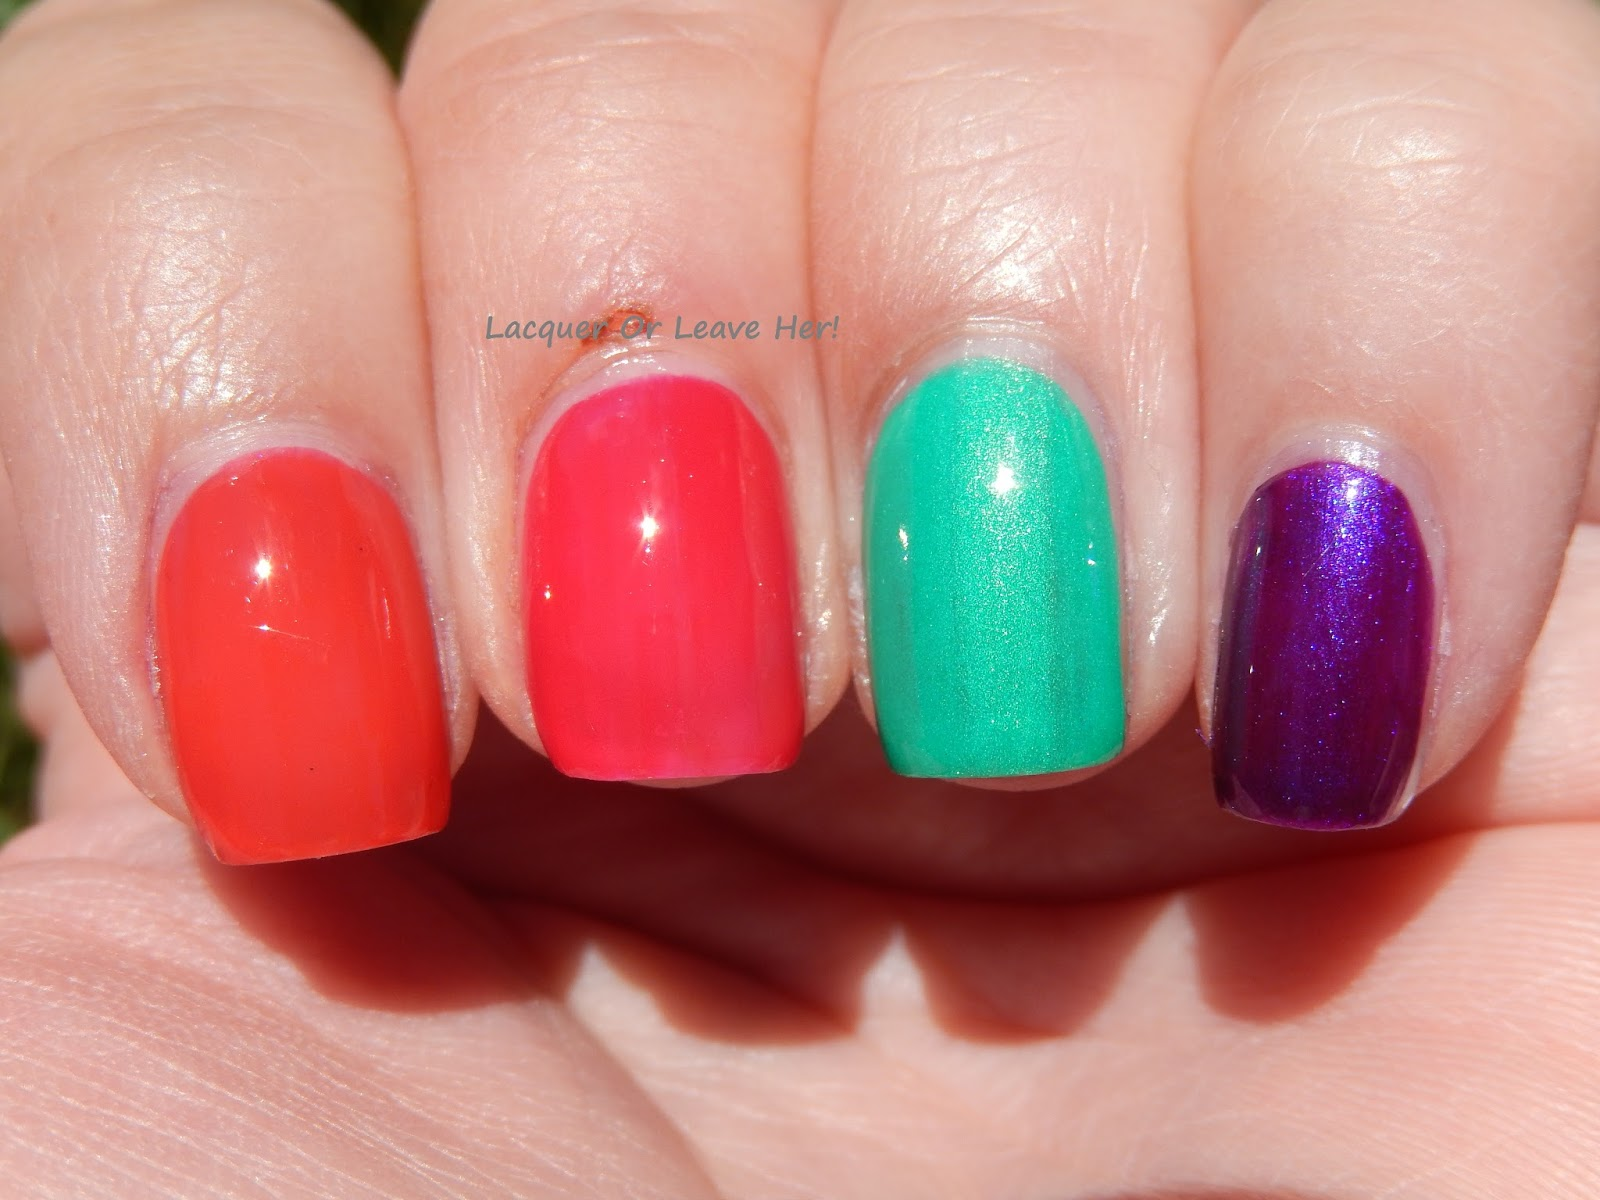 Lacquer or Leave Her!: Review: Jenna Hipp Collection